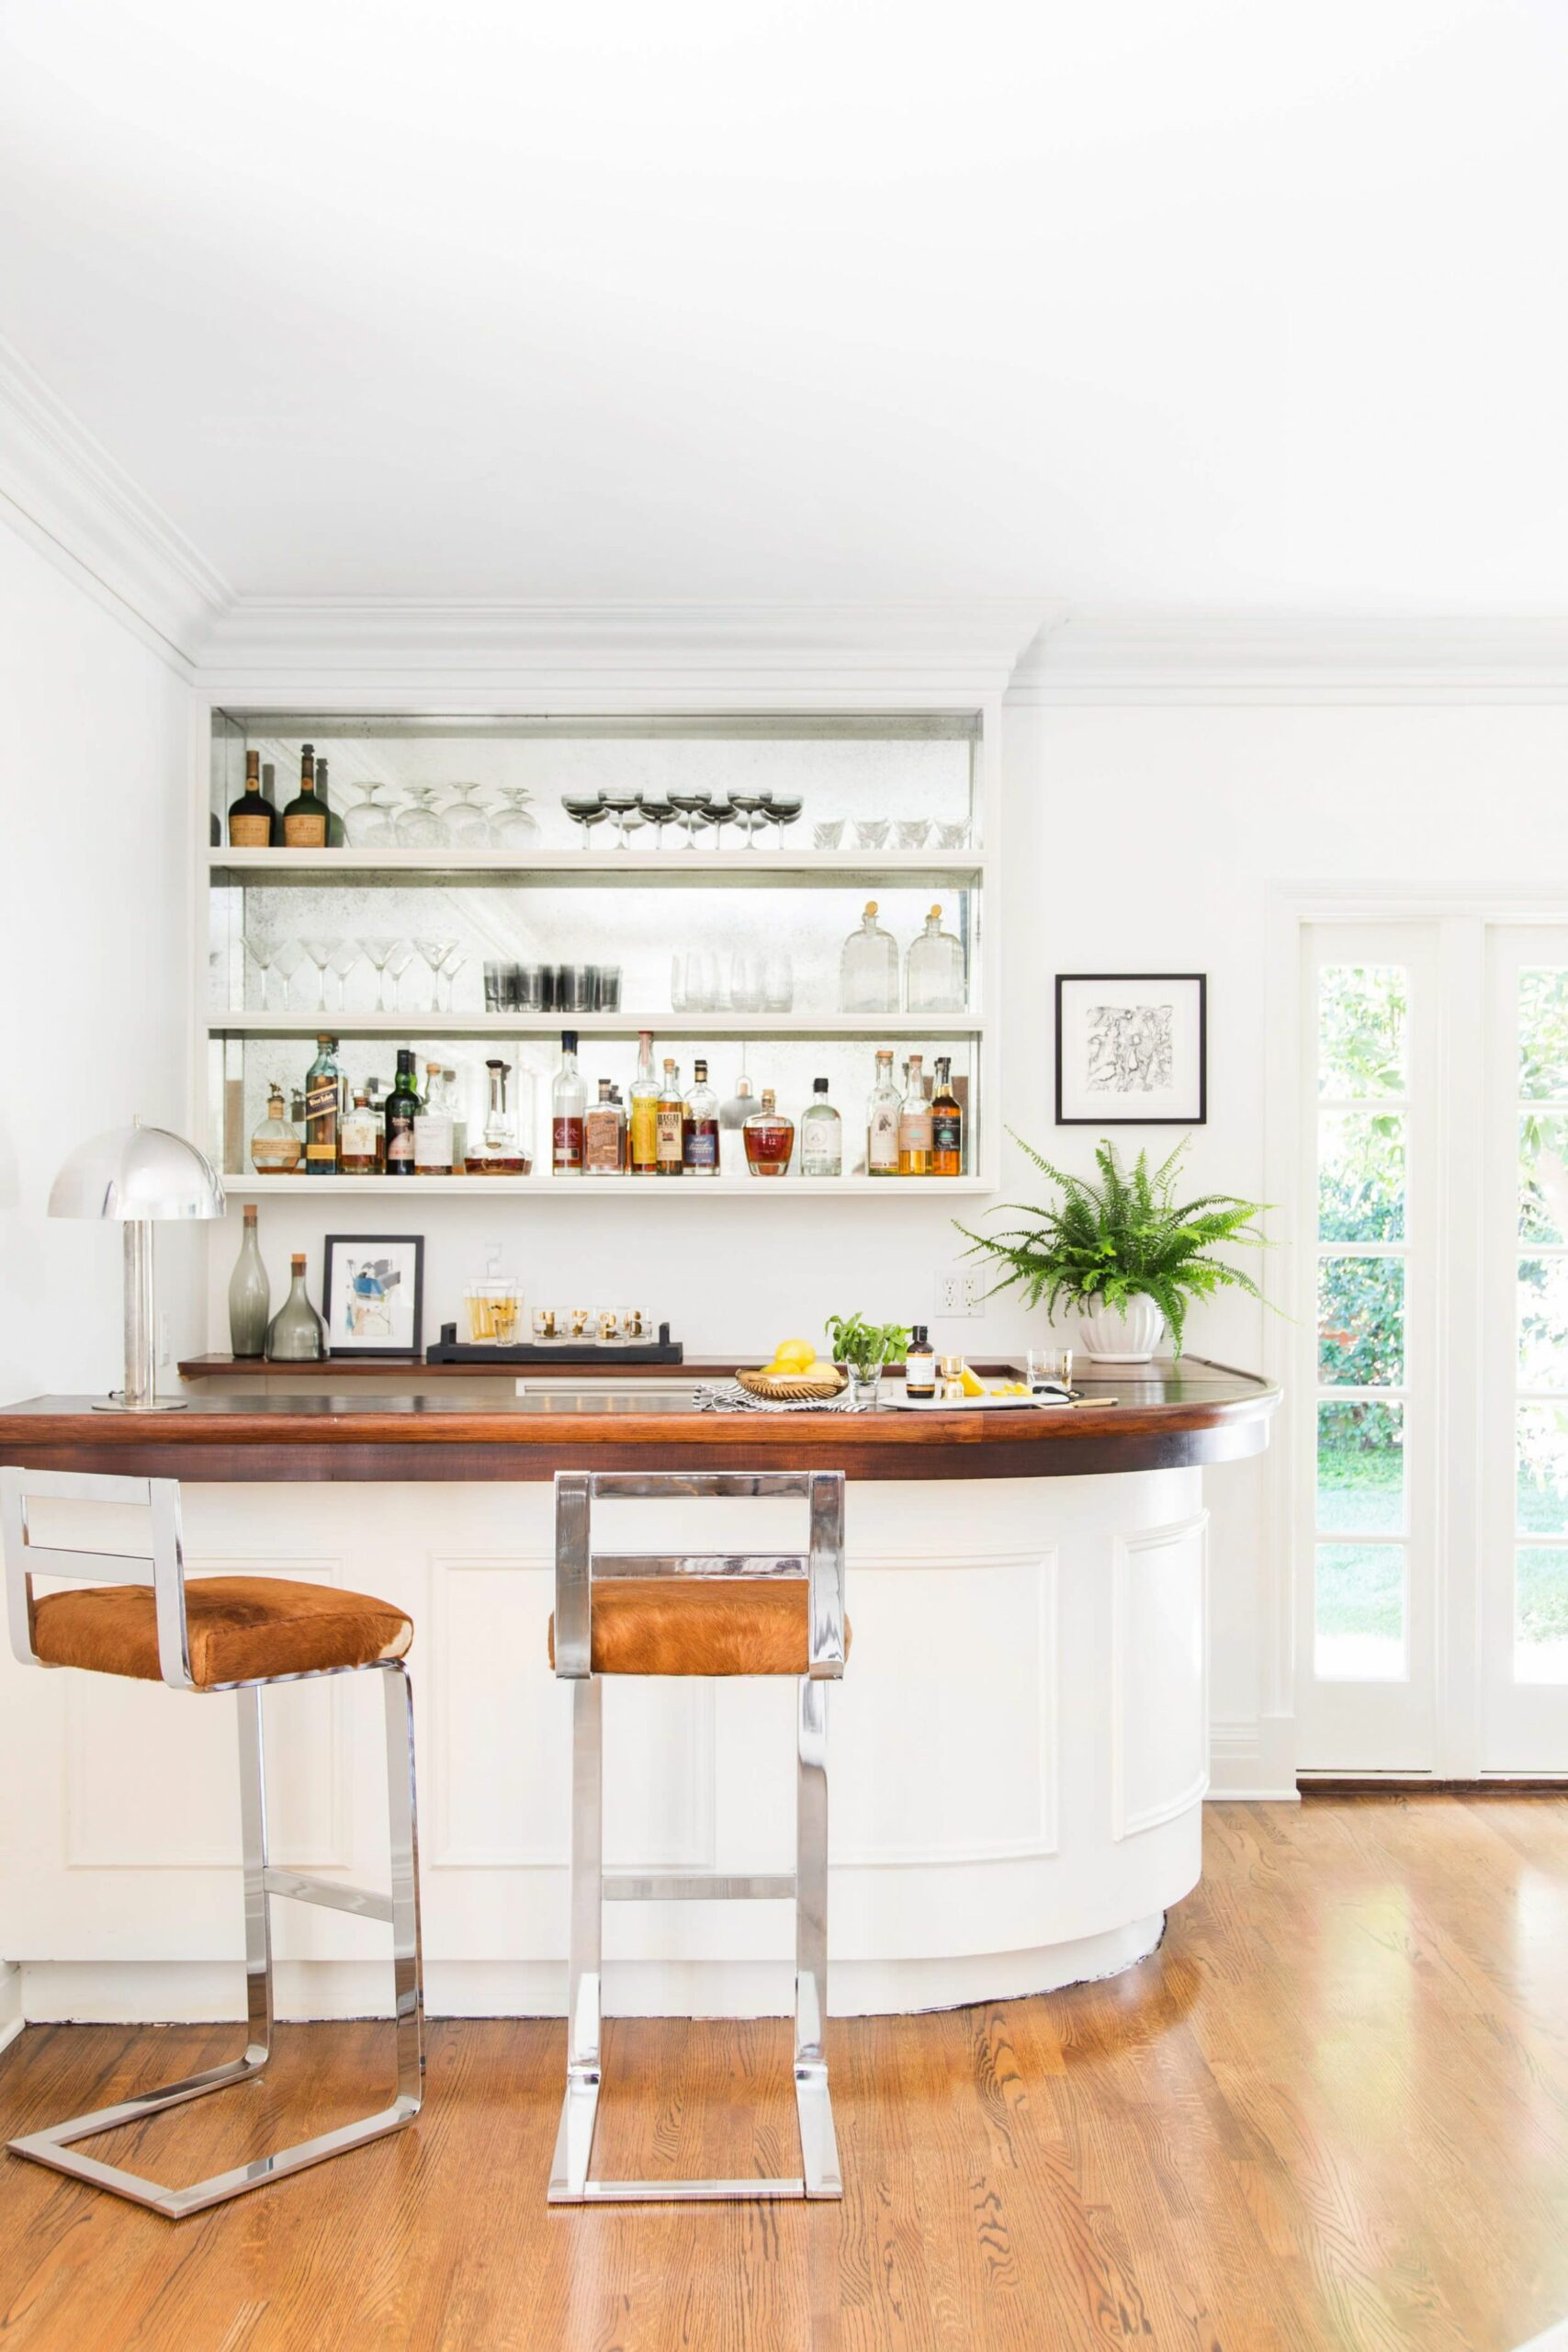 Griffith Park Sunroom Reveal + Get The Look (With images) | Living ..